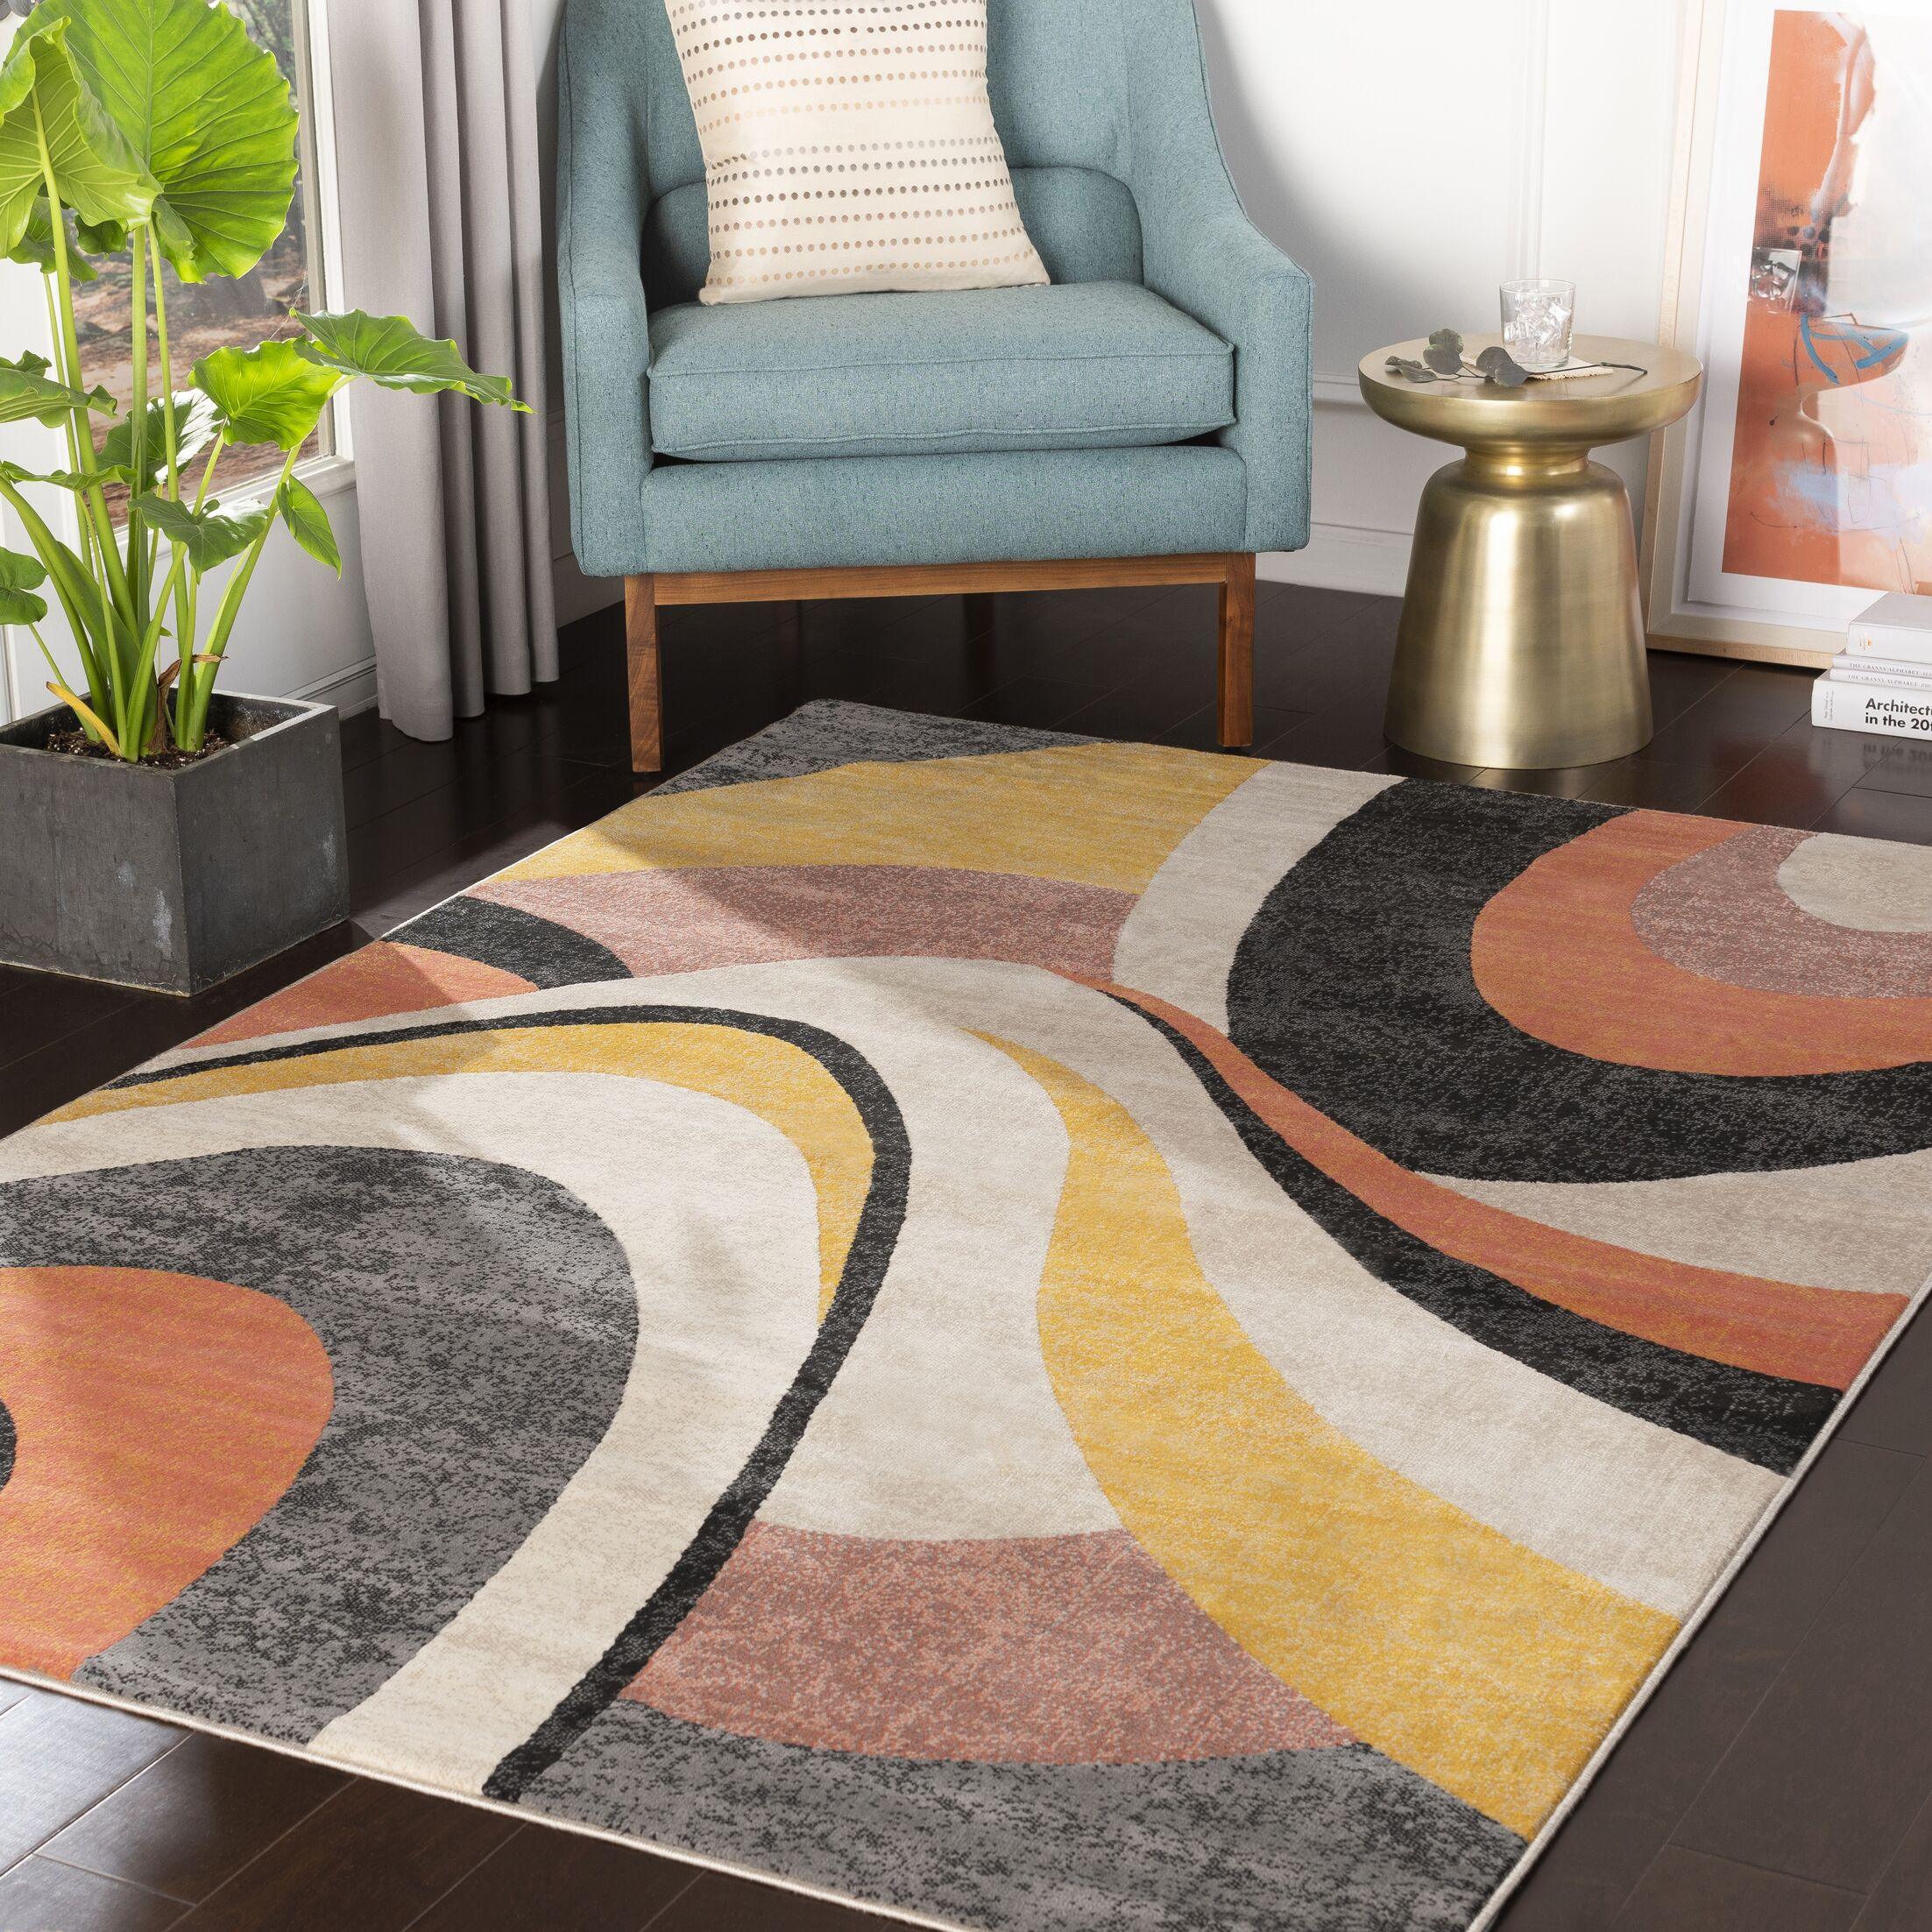 Huerta Modern Abstract Coral/Taupe Area Rug Rug Size: Rectangle 3'11'' x 5'7''